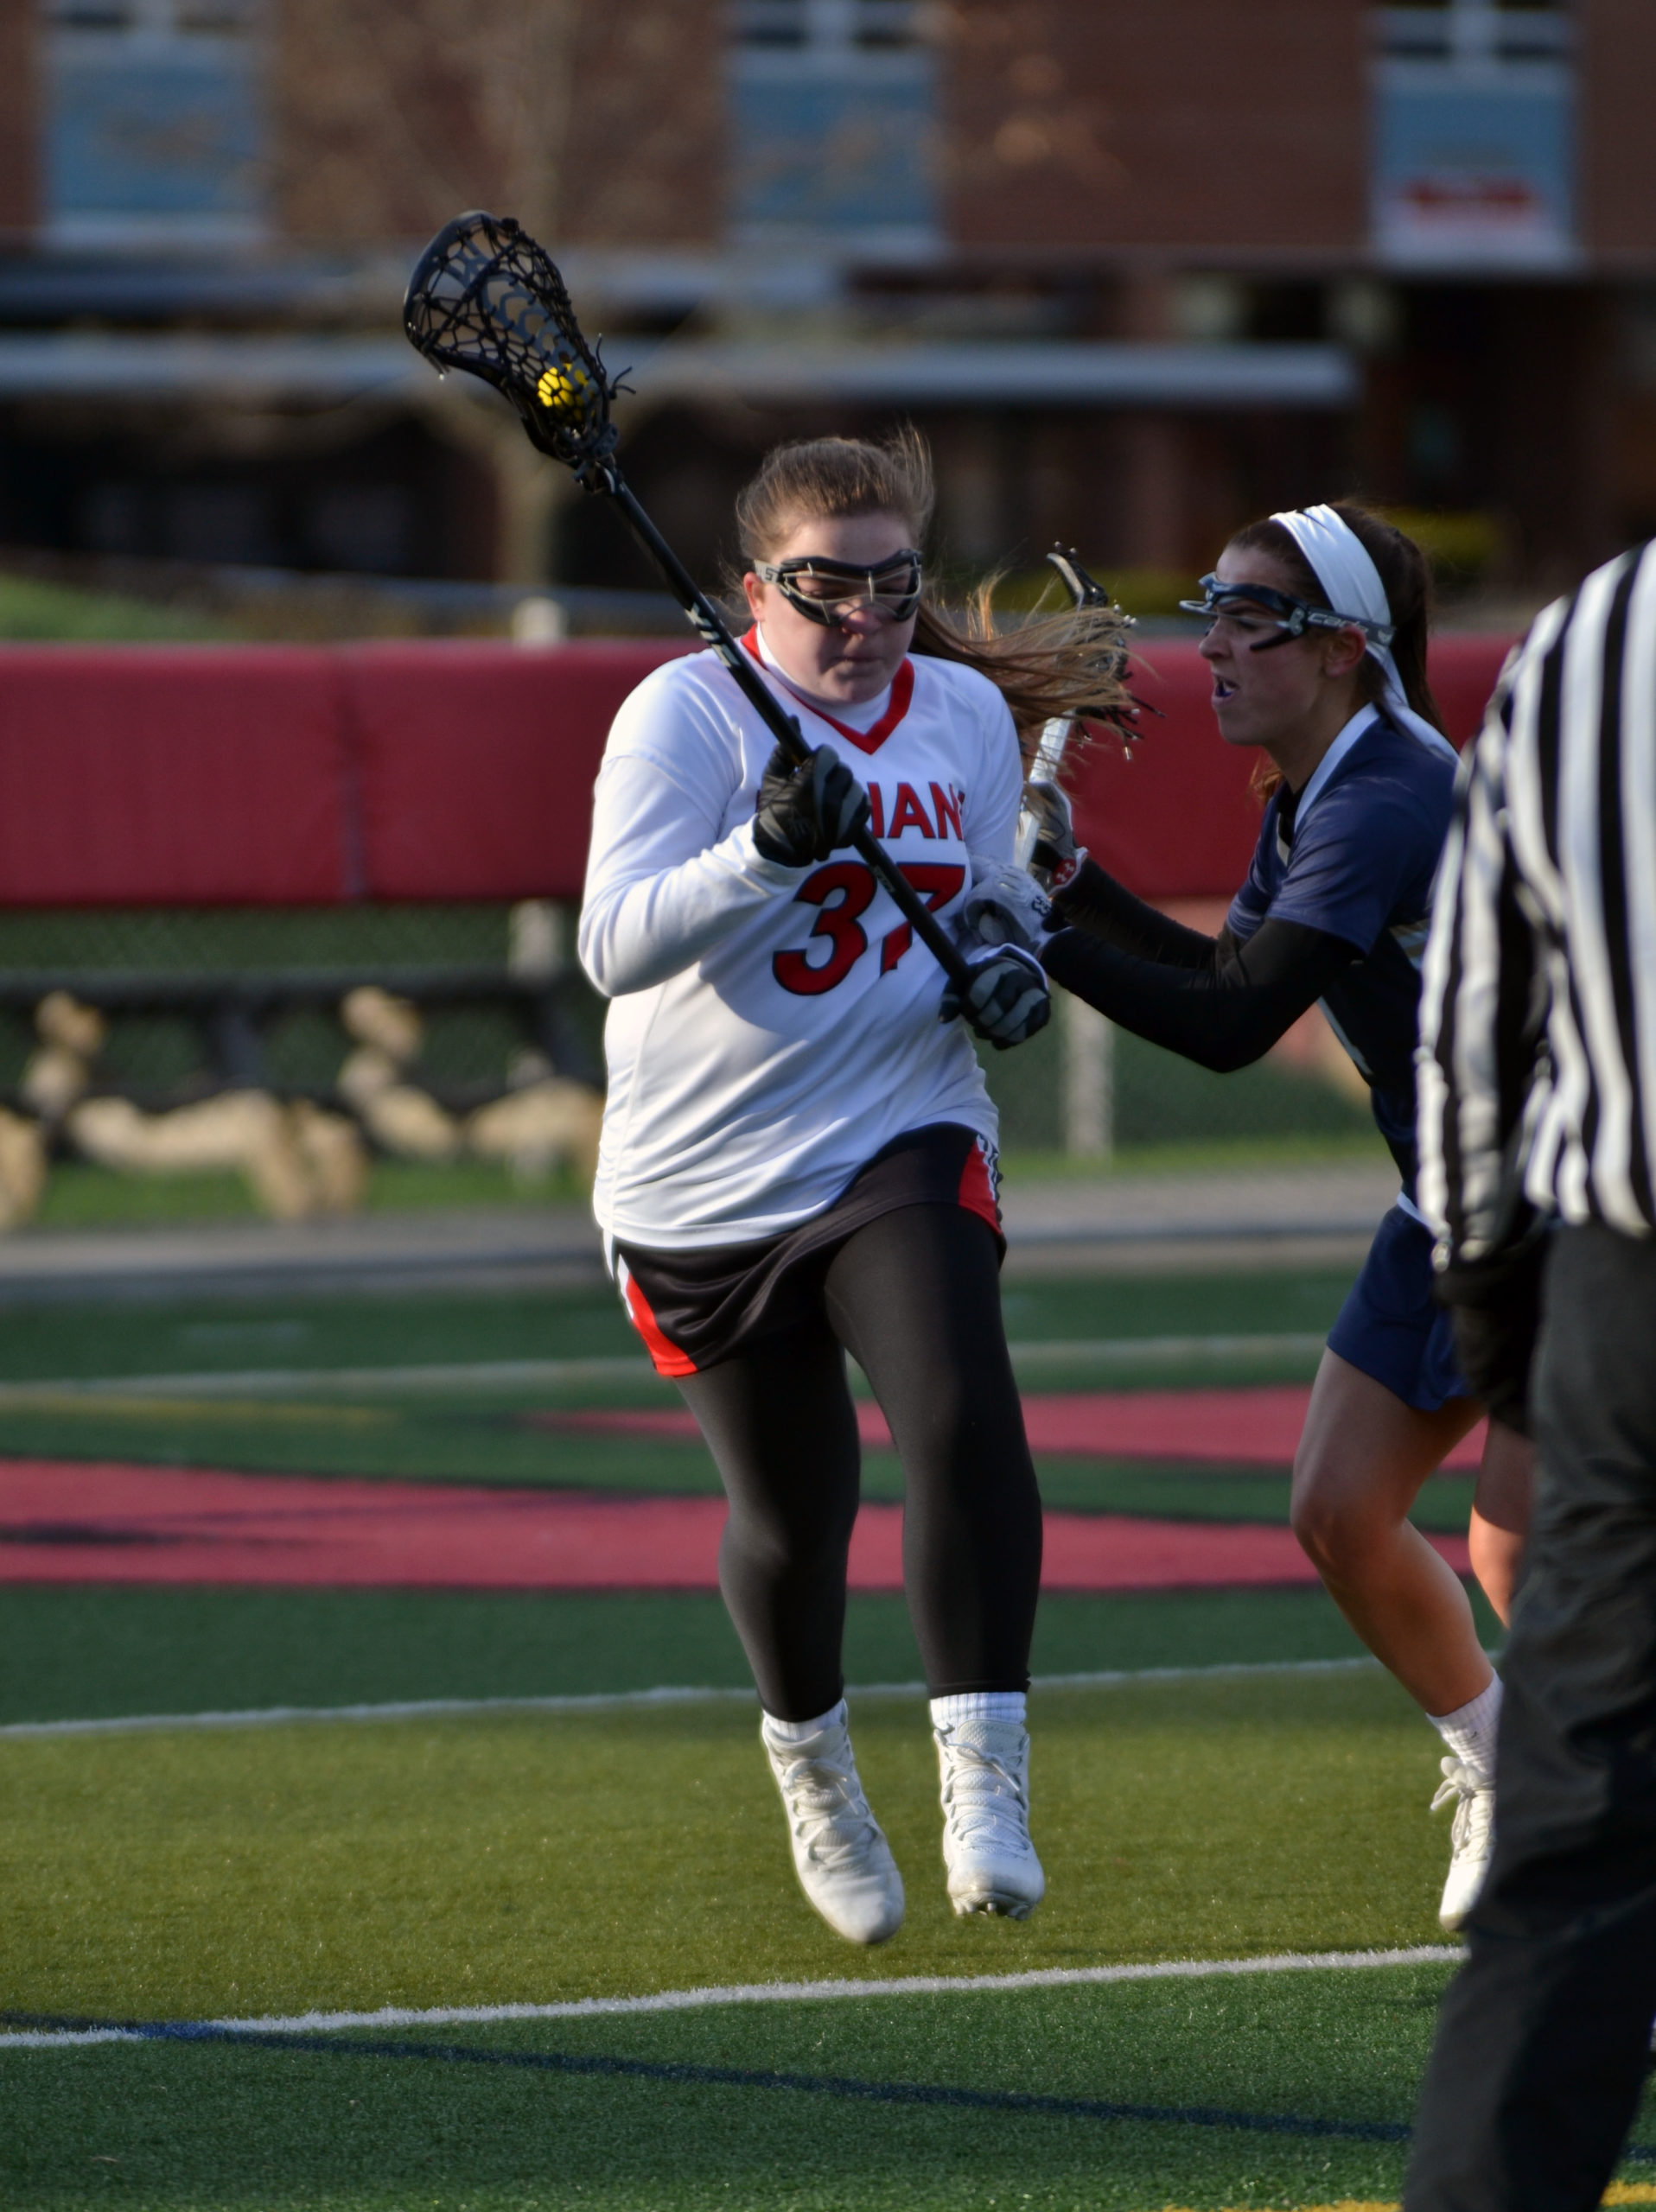 Girls lacrosse faces-off against tough competition